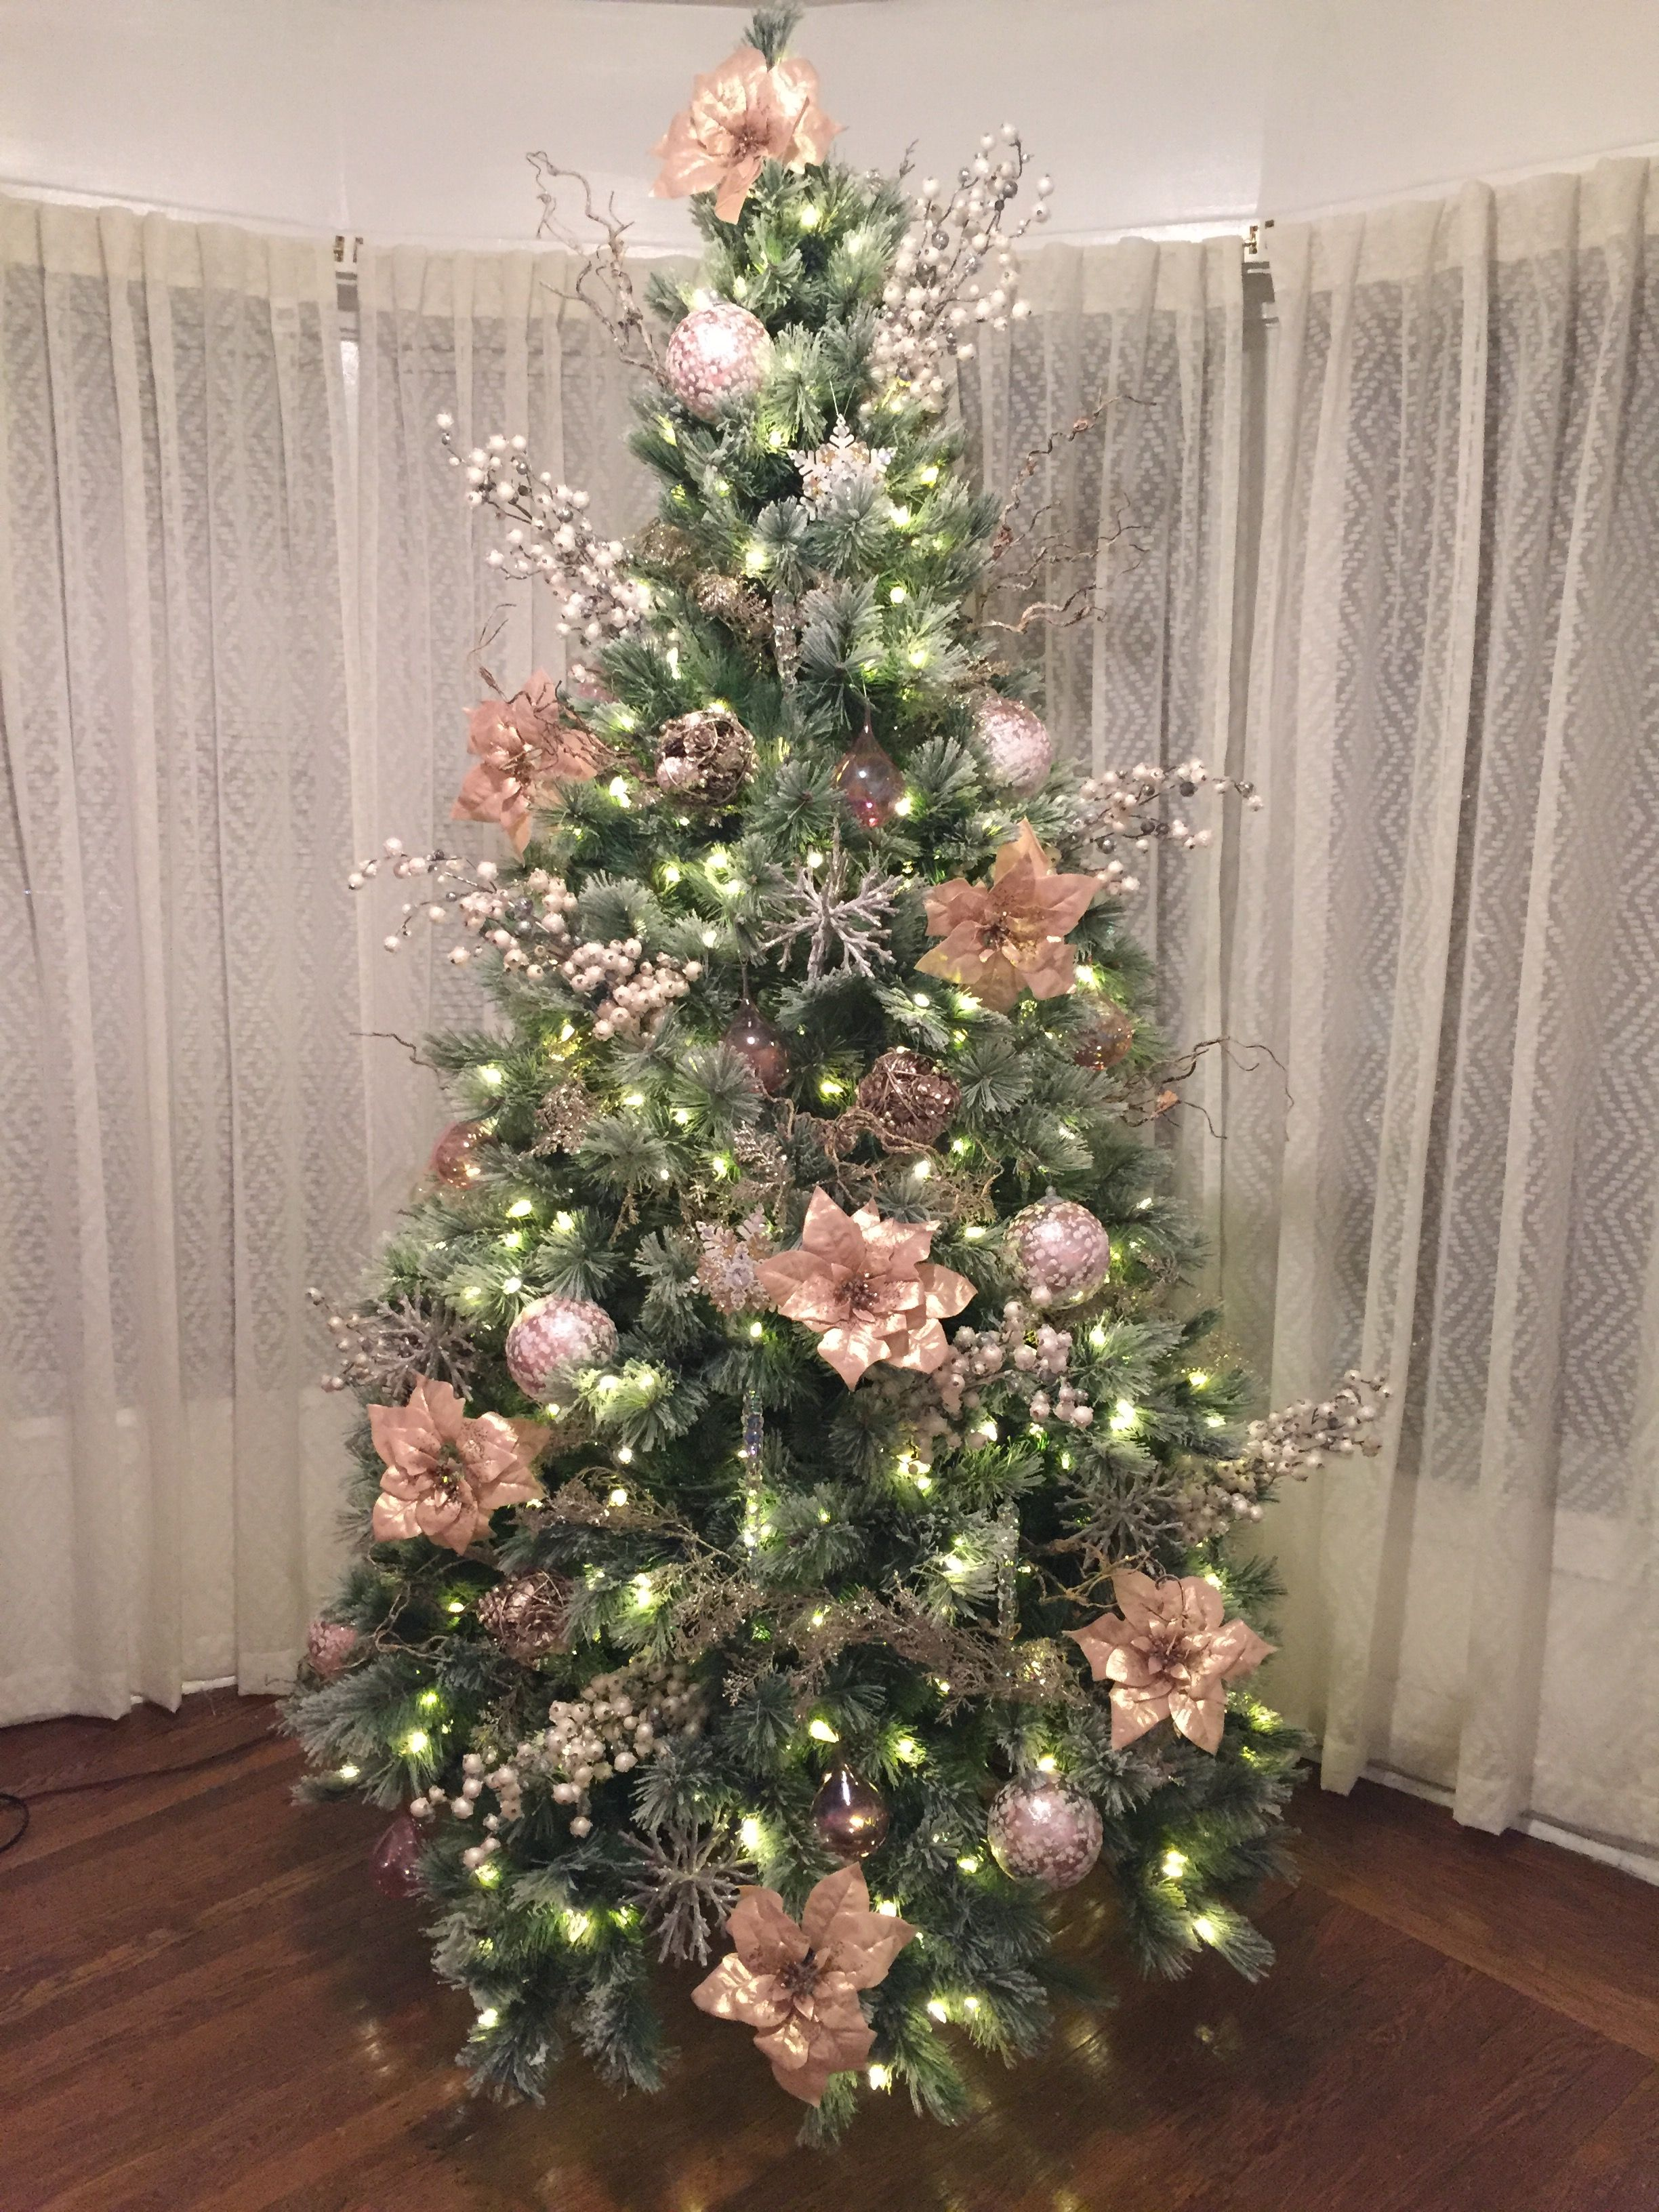 Pink Poinsettias Decorate This Christmas Tree White Lights And Sprays Christmas Tree Christmas Tree Themes Christmas Tree Toppers